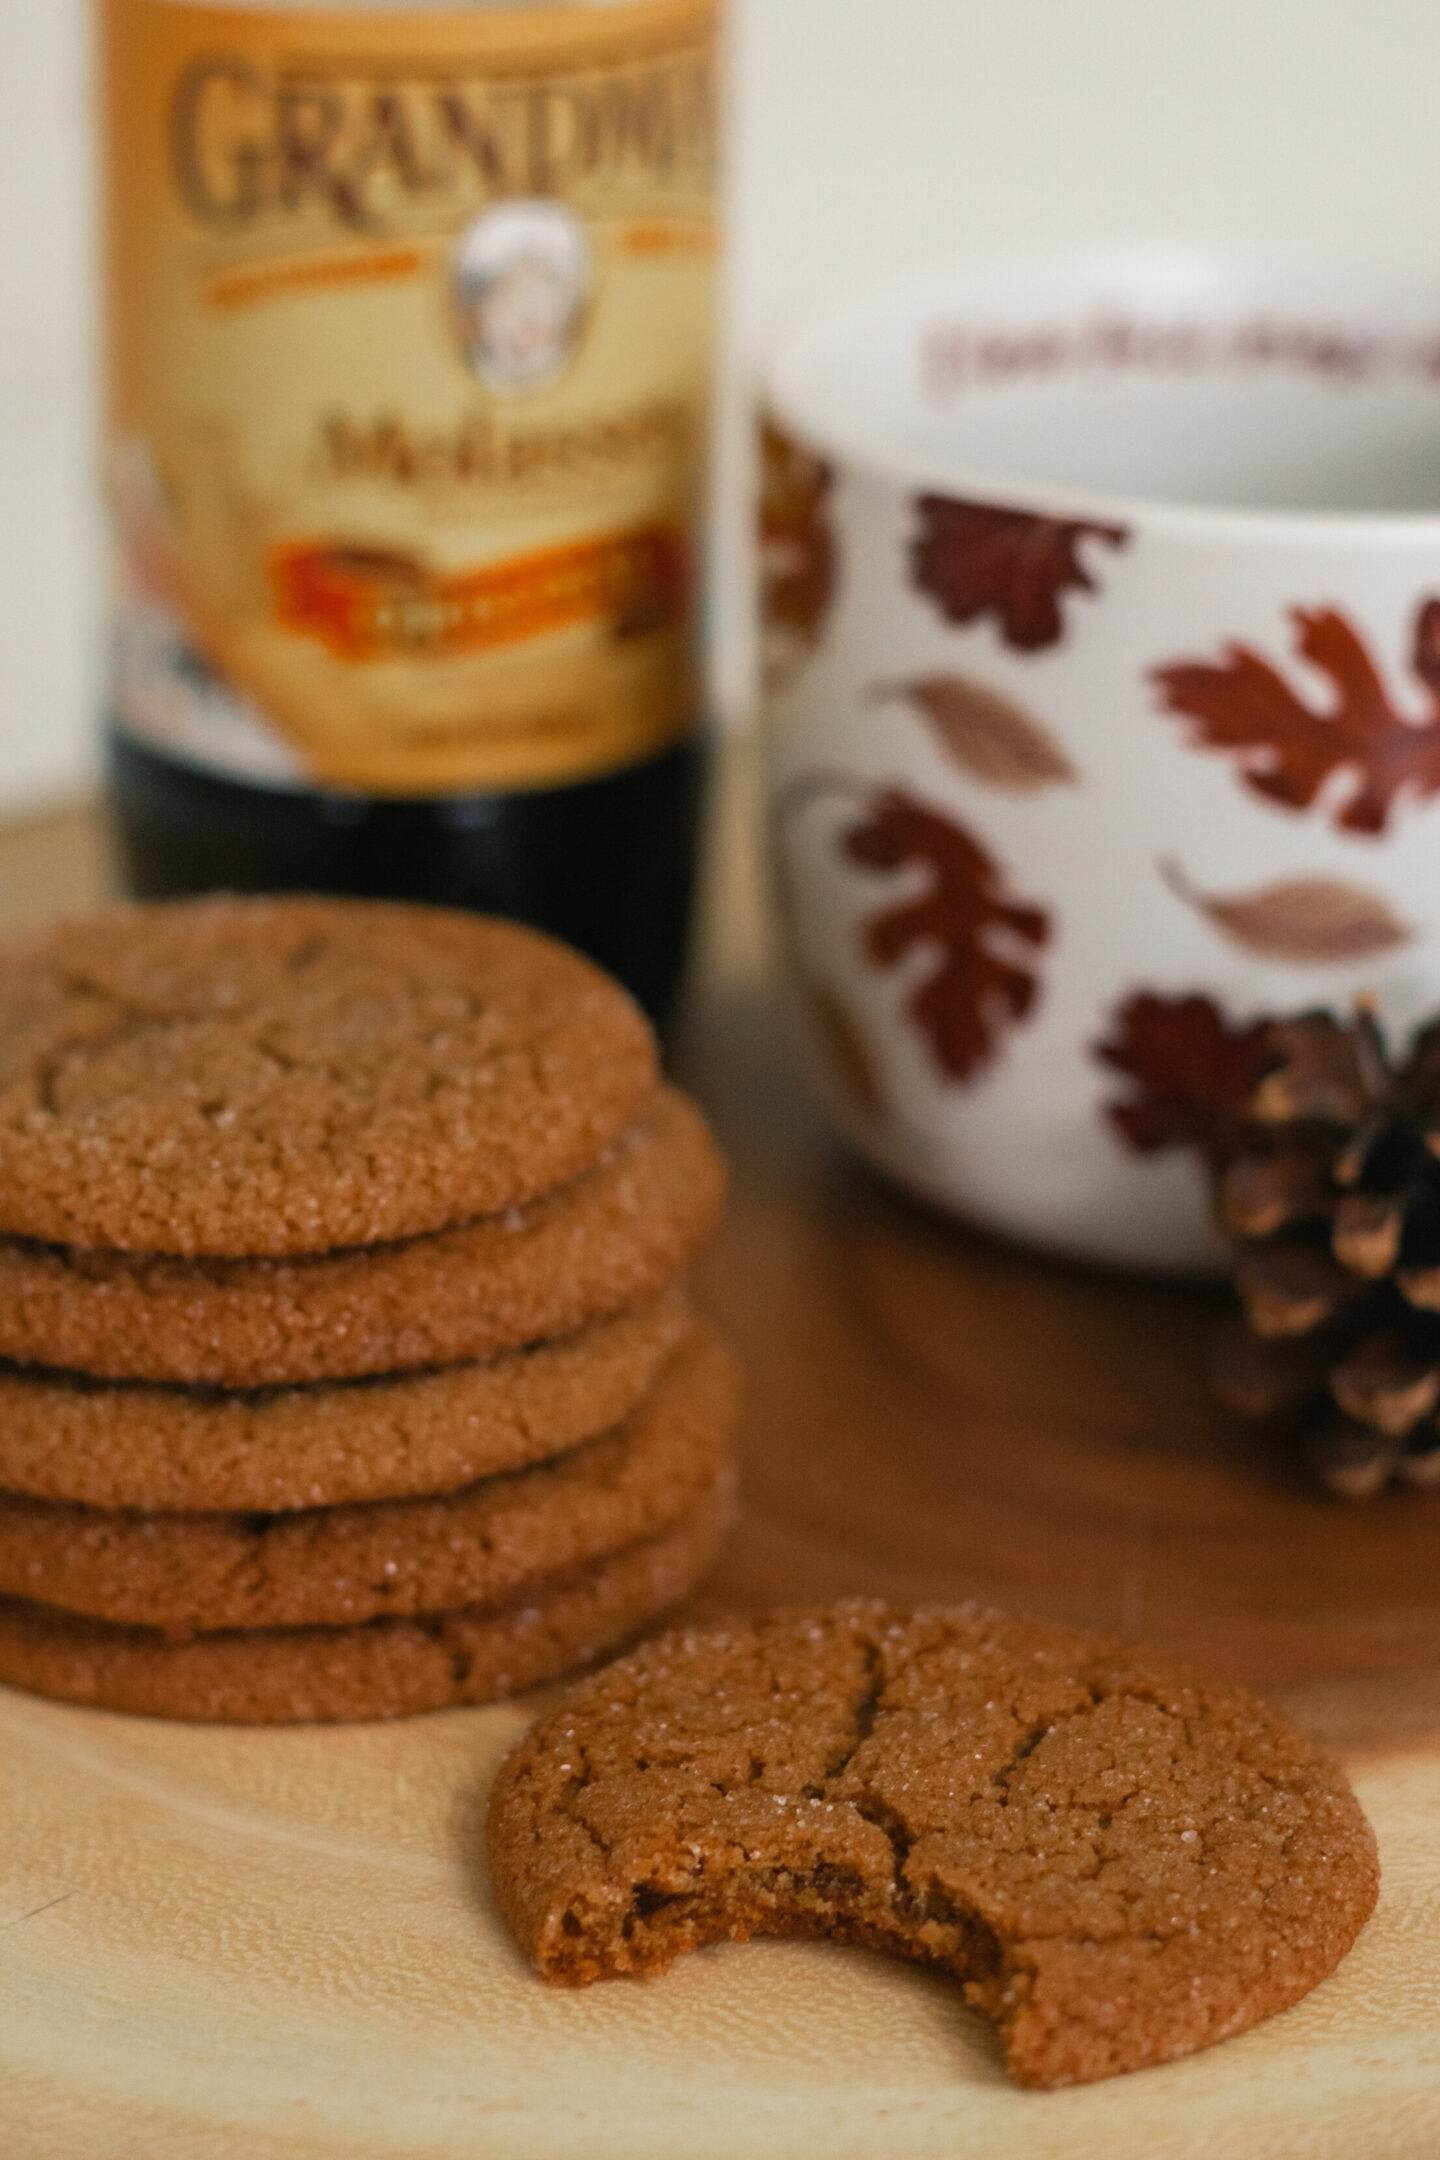 crinkle molasses cookies stacked on top of each other, next to a jar of molasses and a mug with leaves on it